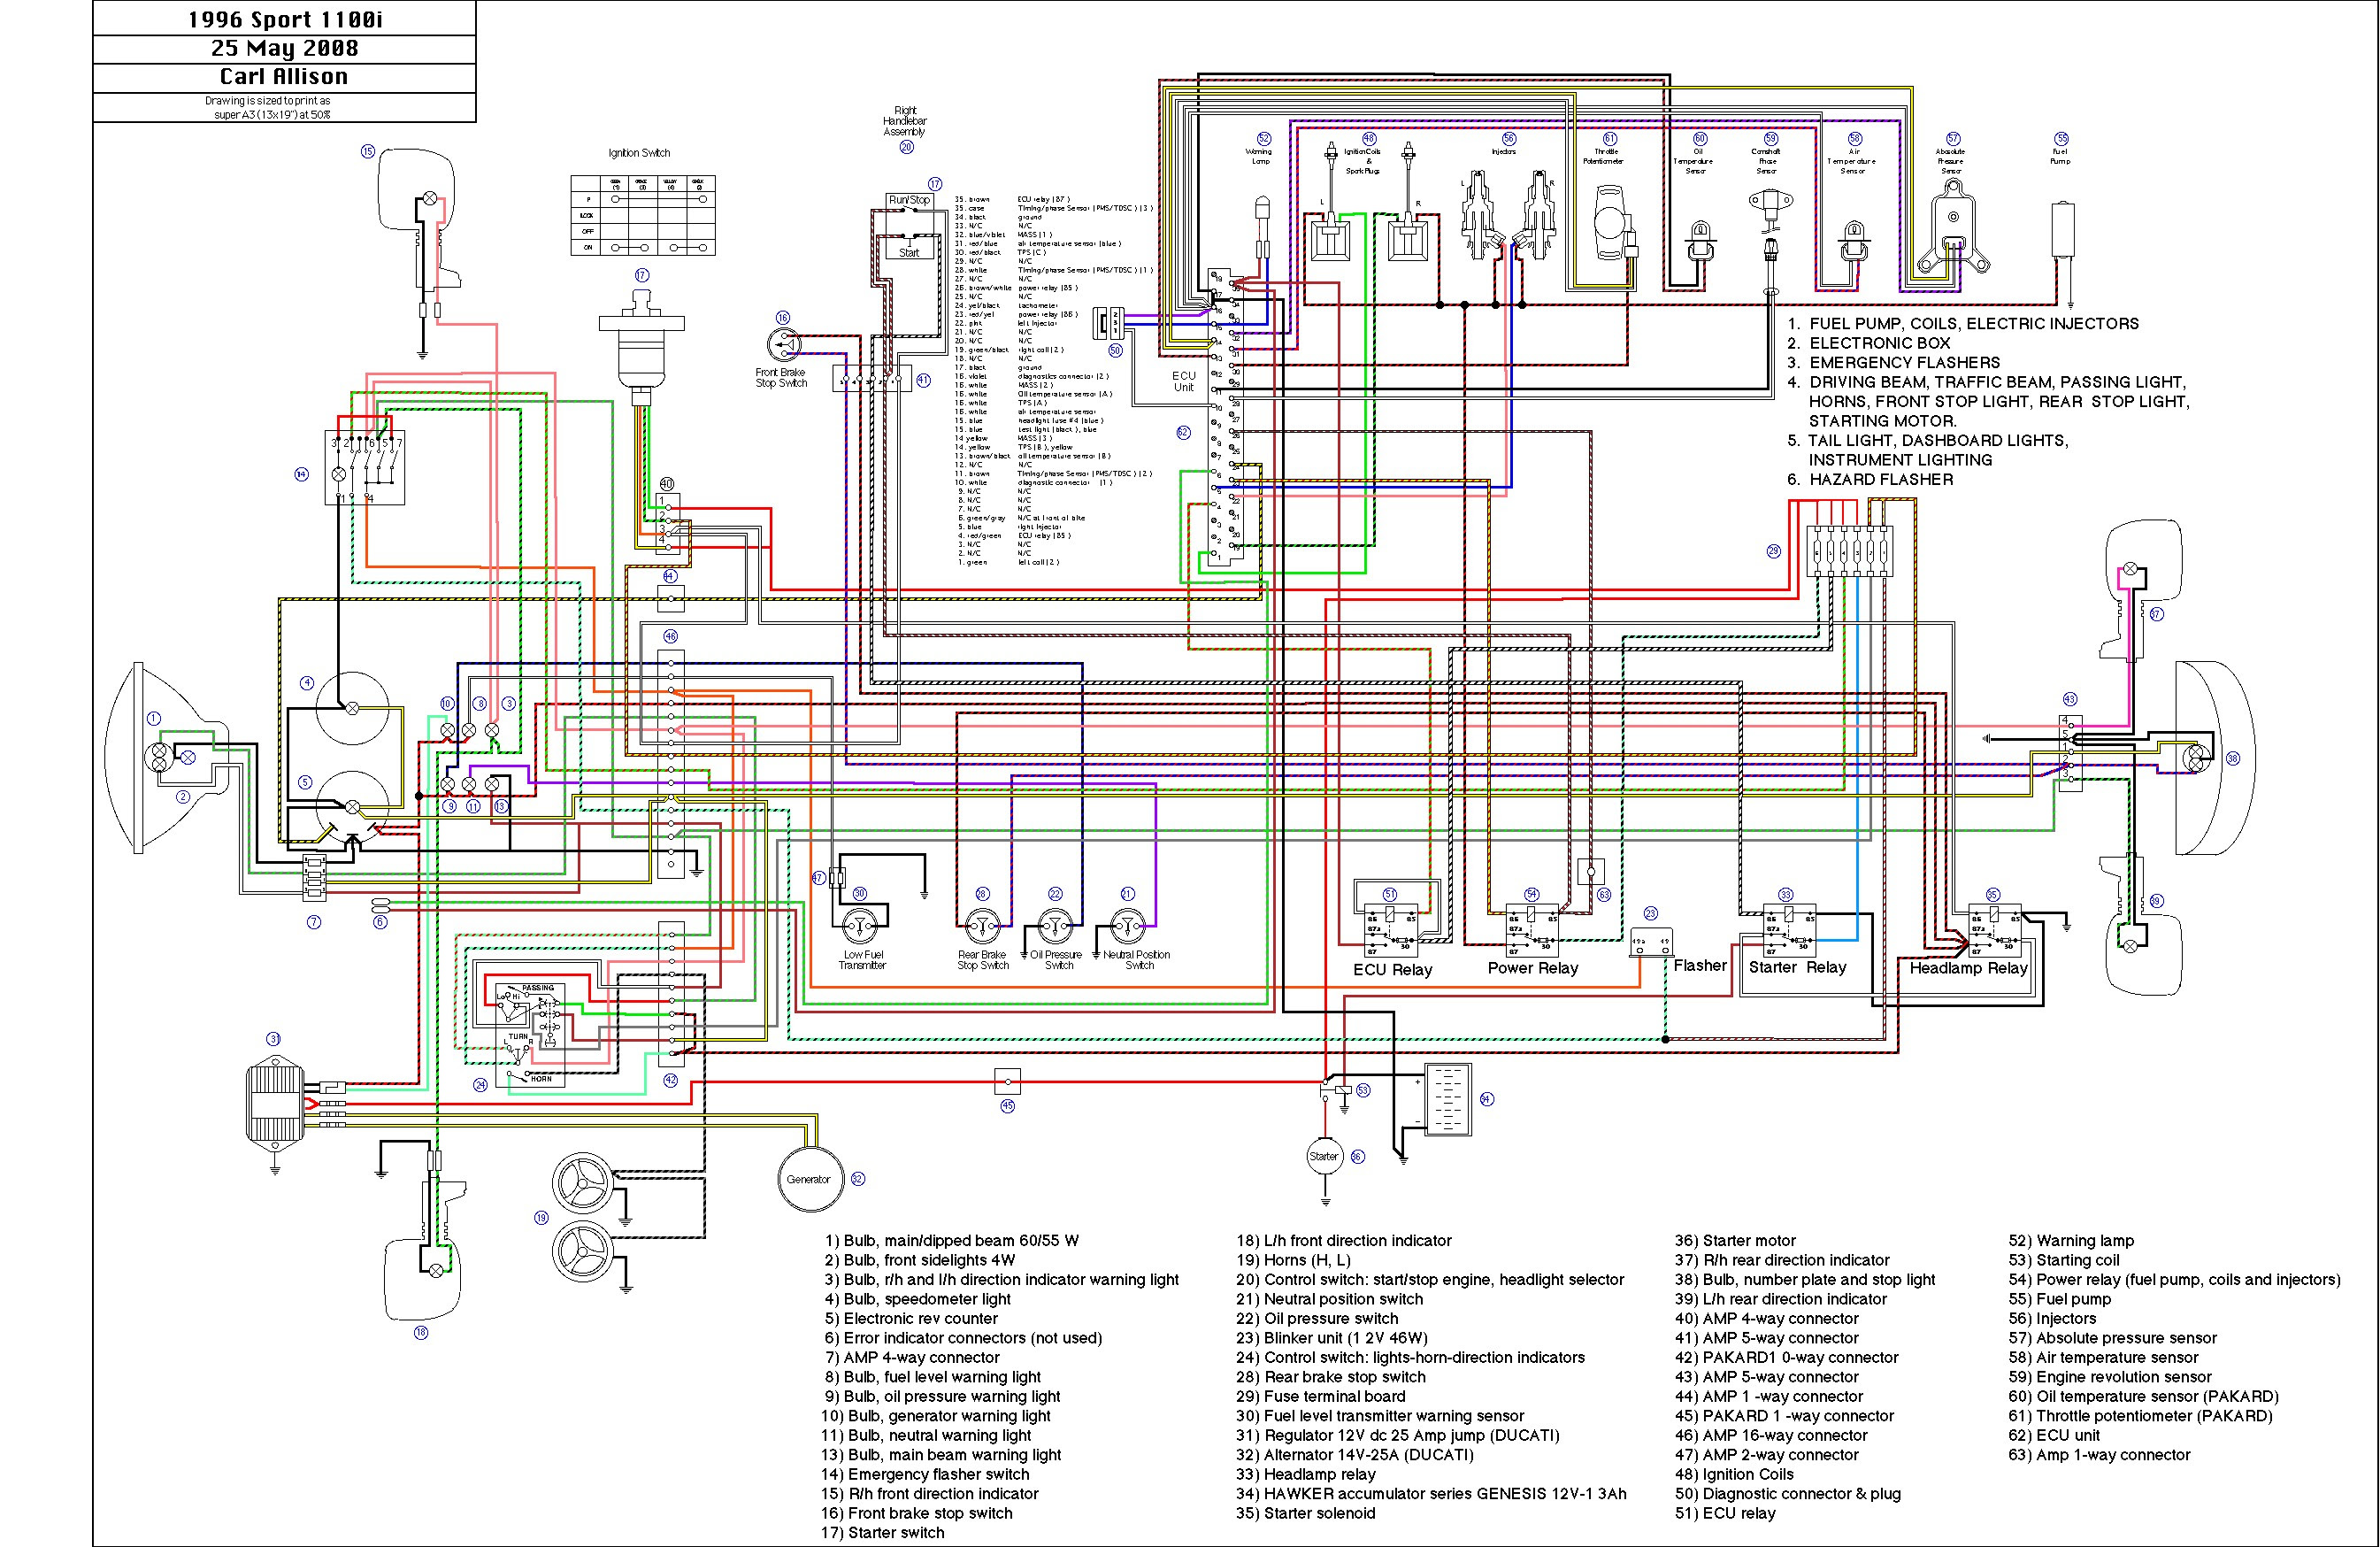 [DIAGRAM_5LK]  Wiring Diagram Vauxhall Vectra B - Gmc Jimmy Wiring Diagram -  1990-300zx.lalu.decorresine.it | Opel Astra 1 6 Wiring Diagram |  | Wiring Diagram Resource